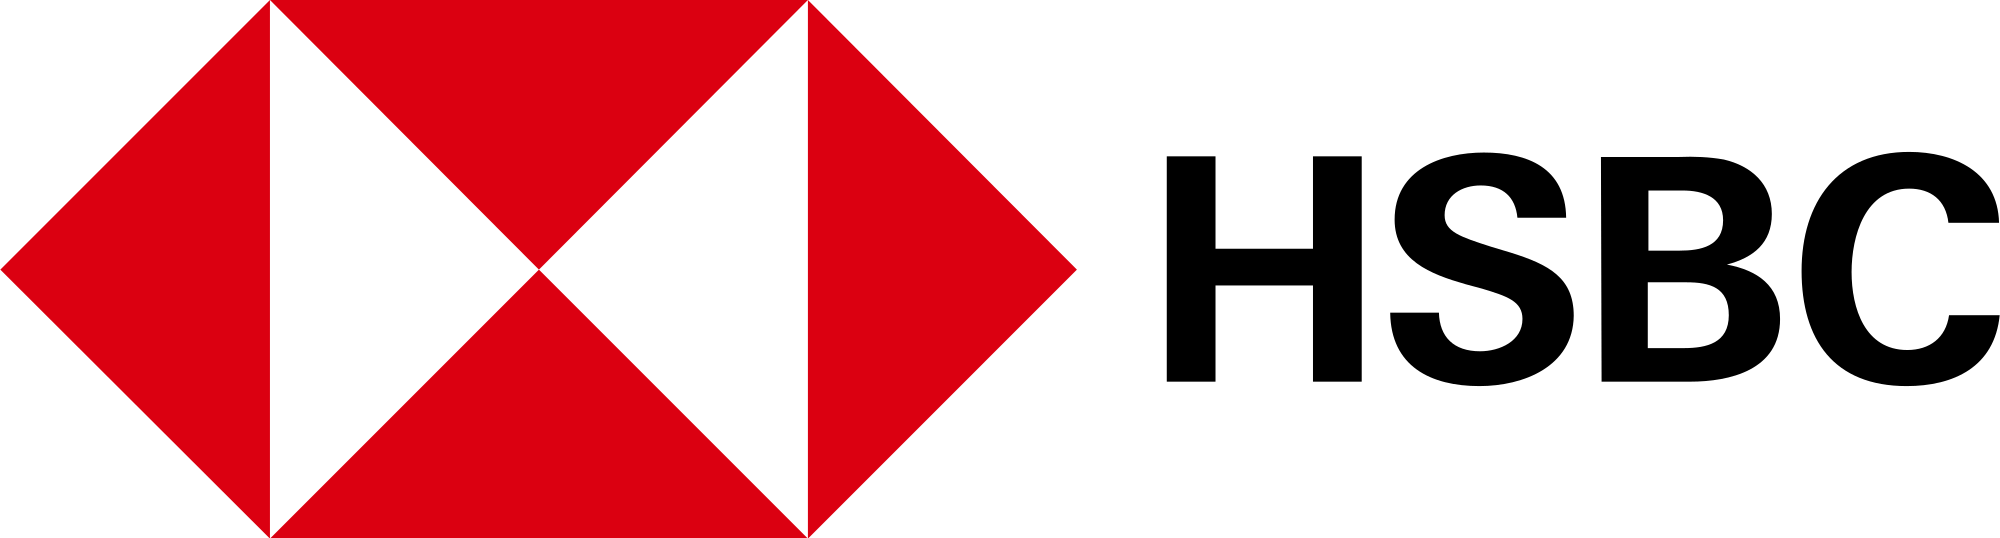 hsbc_bank_partner_logo